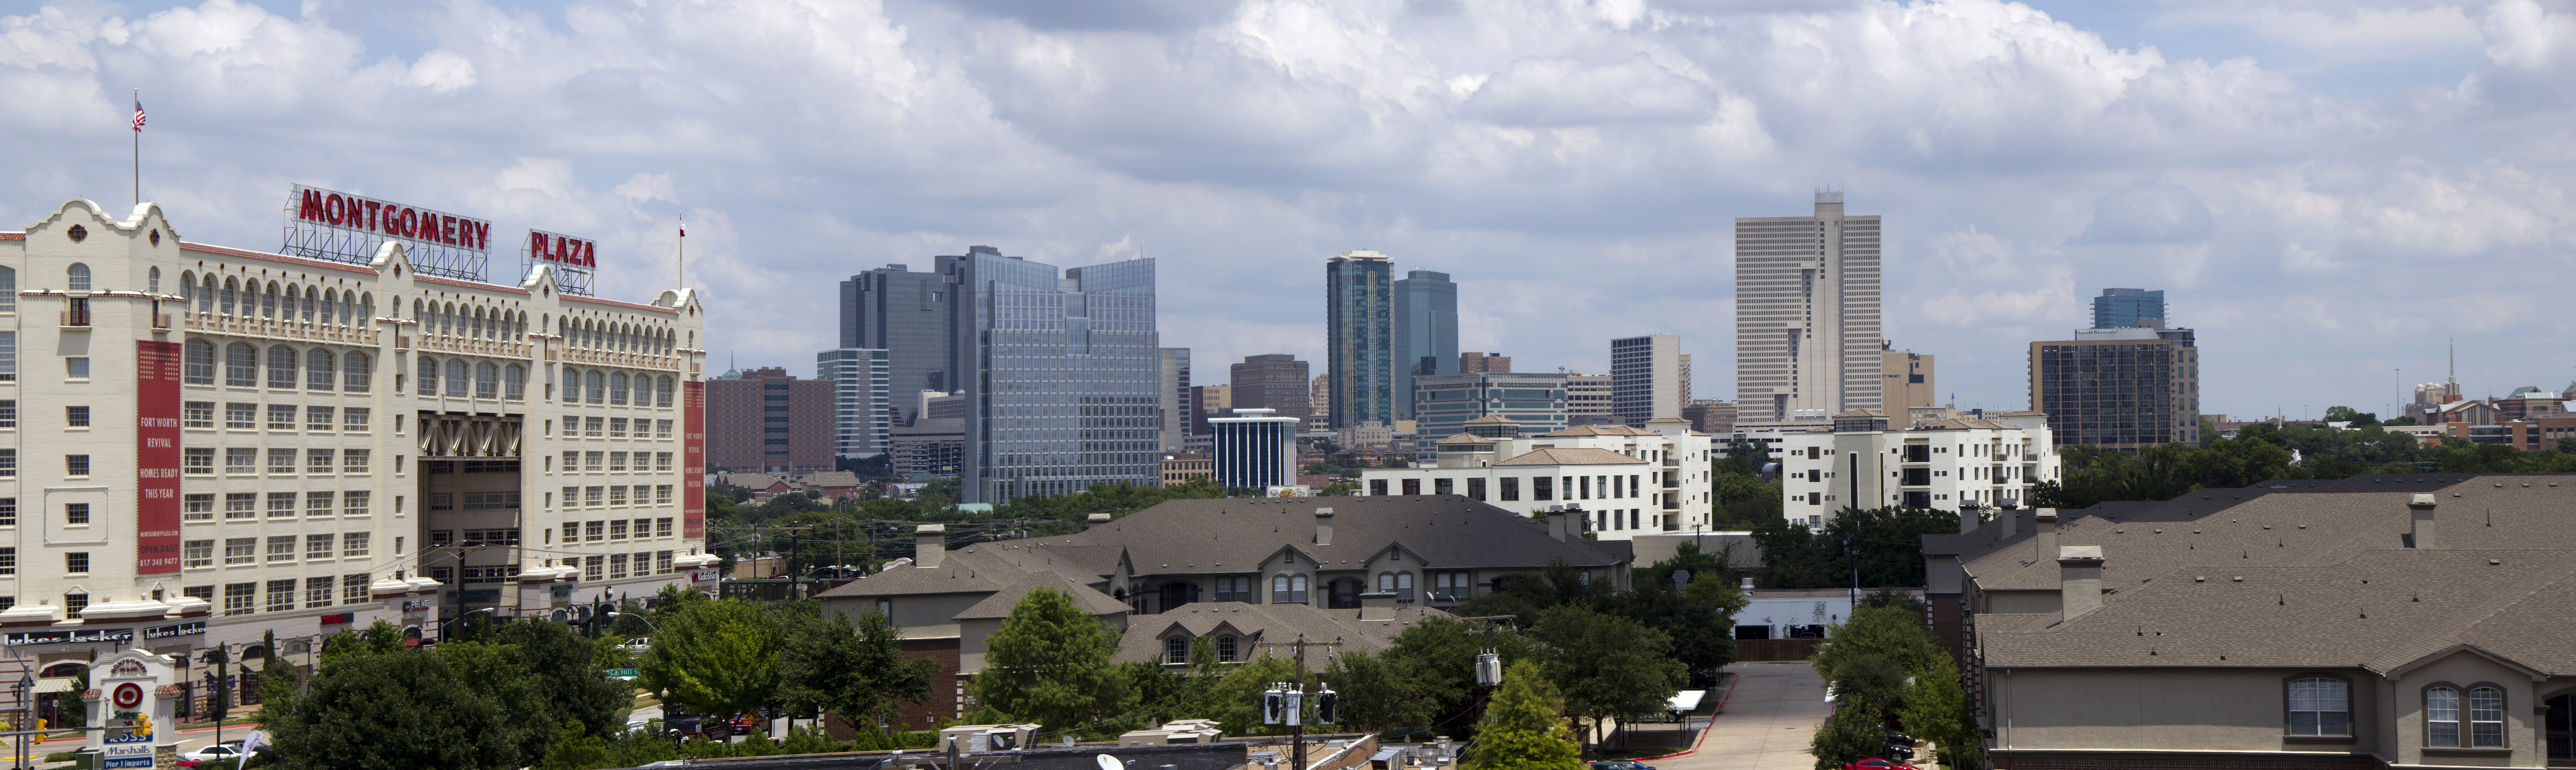 Fort Worth Skyline Viewed From